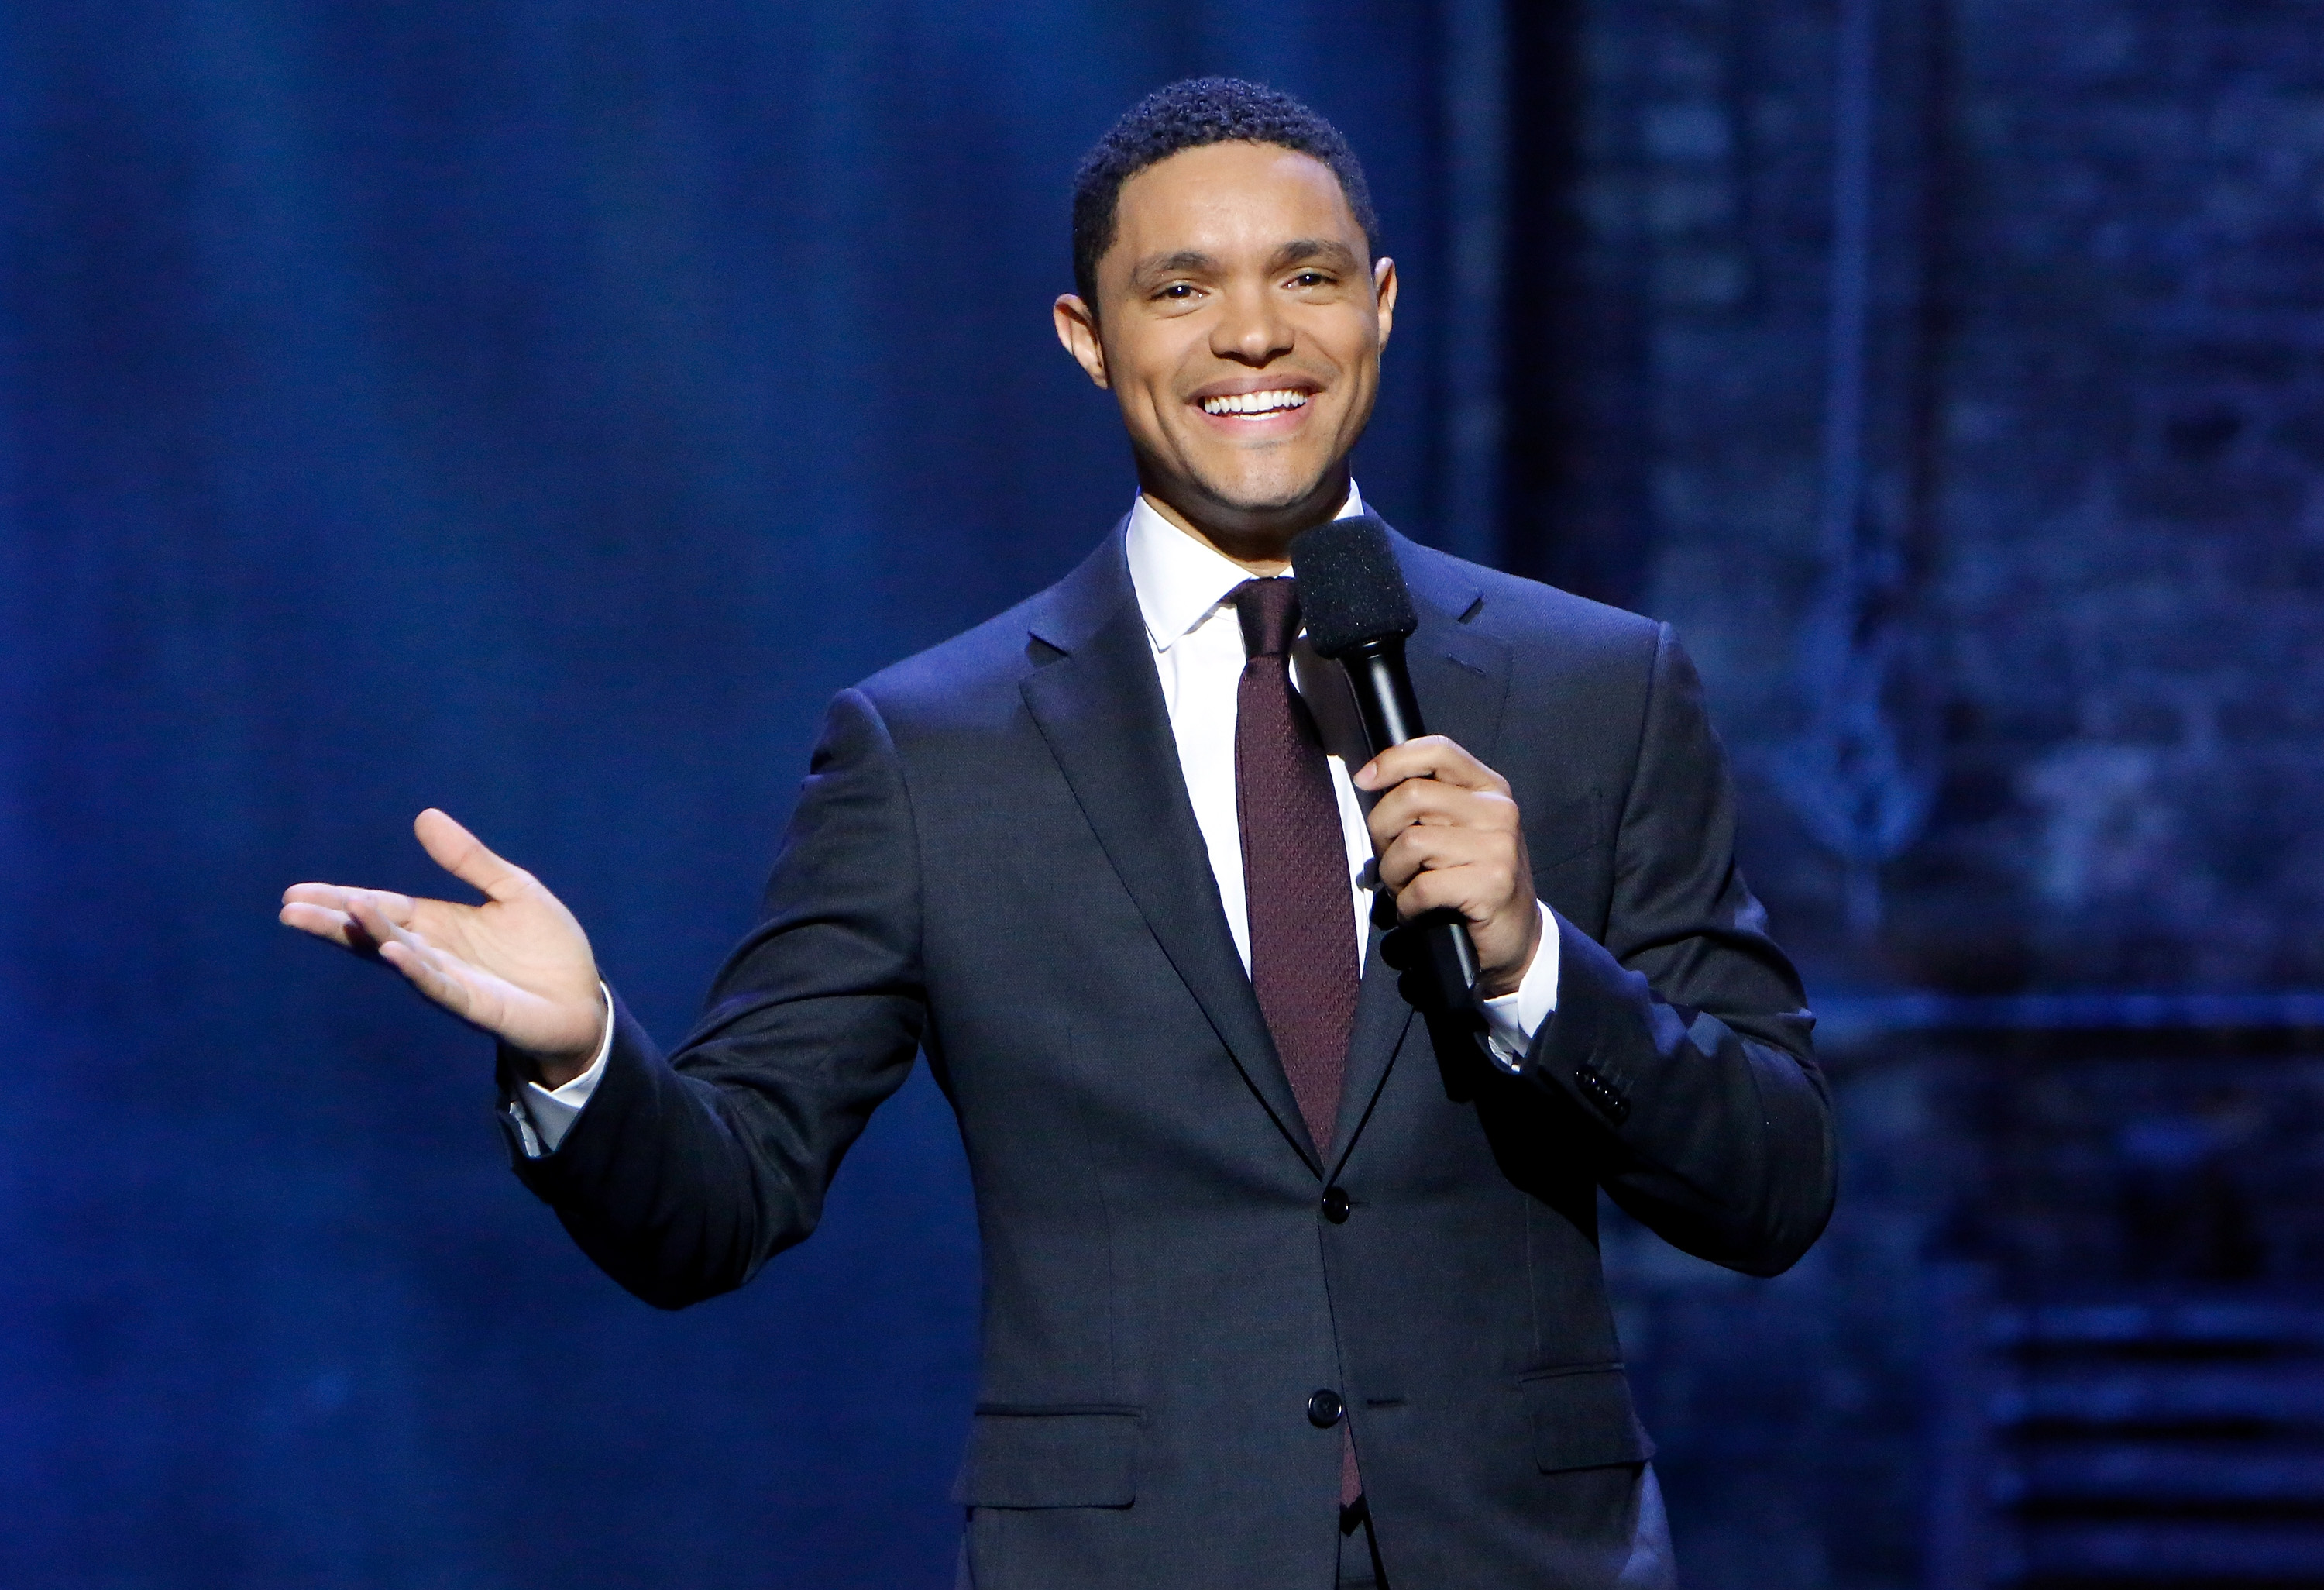 Trevor Noah on The Daily Show Undesked Chicago 2017: Lets Do This Before It Gets Too Damn Cold Comedy Centrals The Daily Show with Trevor Noah taping Monday, October 16 through Thursday, October 19 from Chicago's The Athenaeum Theatre and airing nightly at 11:00 p.m. ET/PT, 10:00 p.m. CT on October 16, 2017 in Chicago, Illinois.